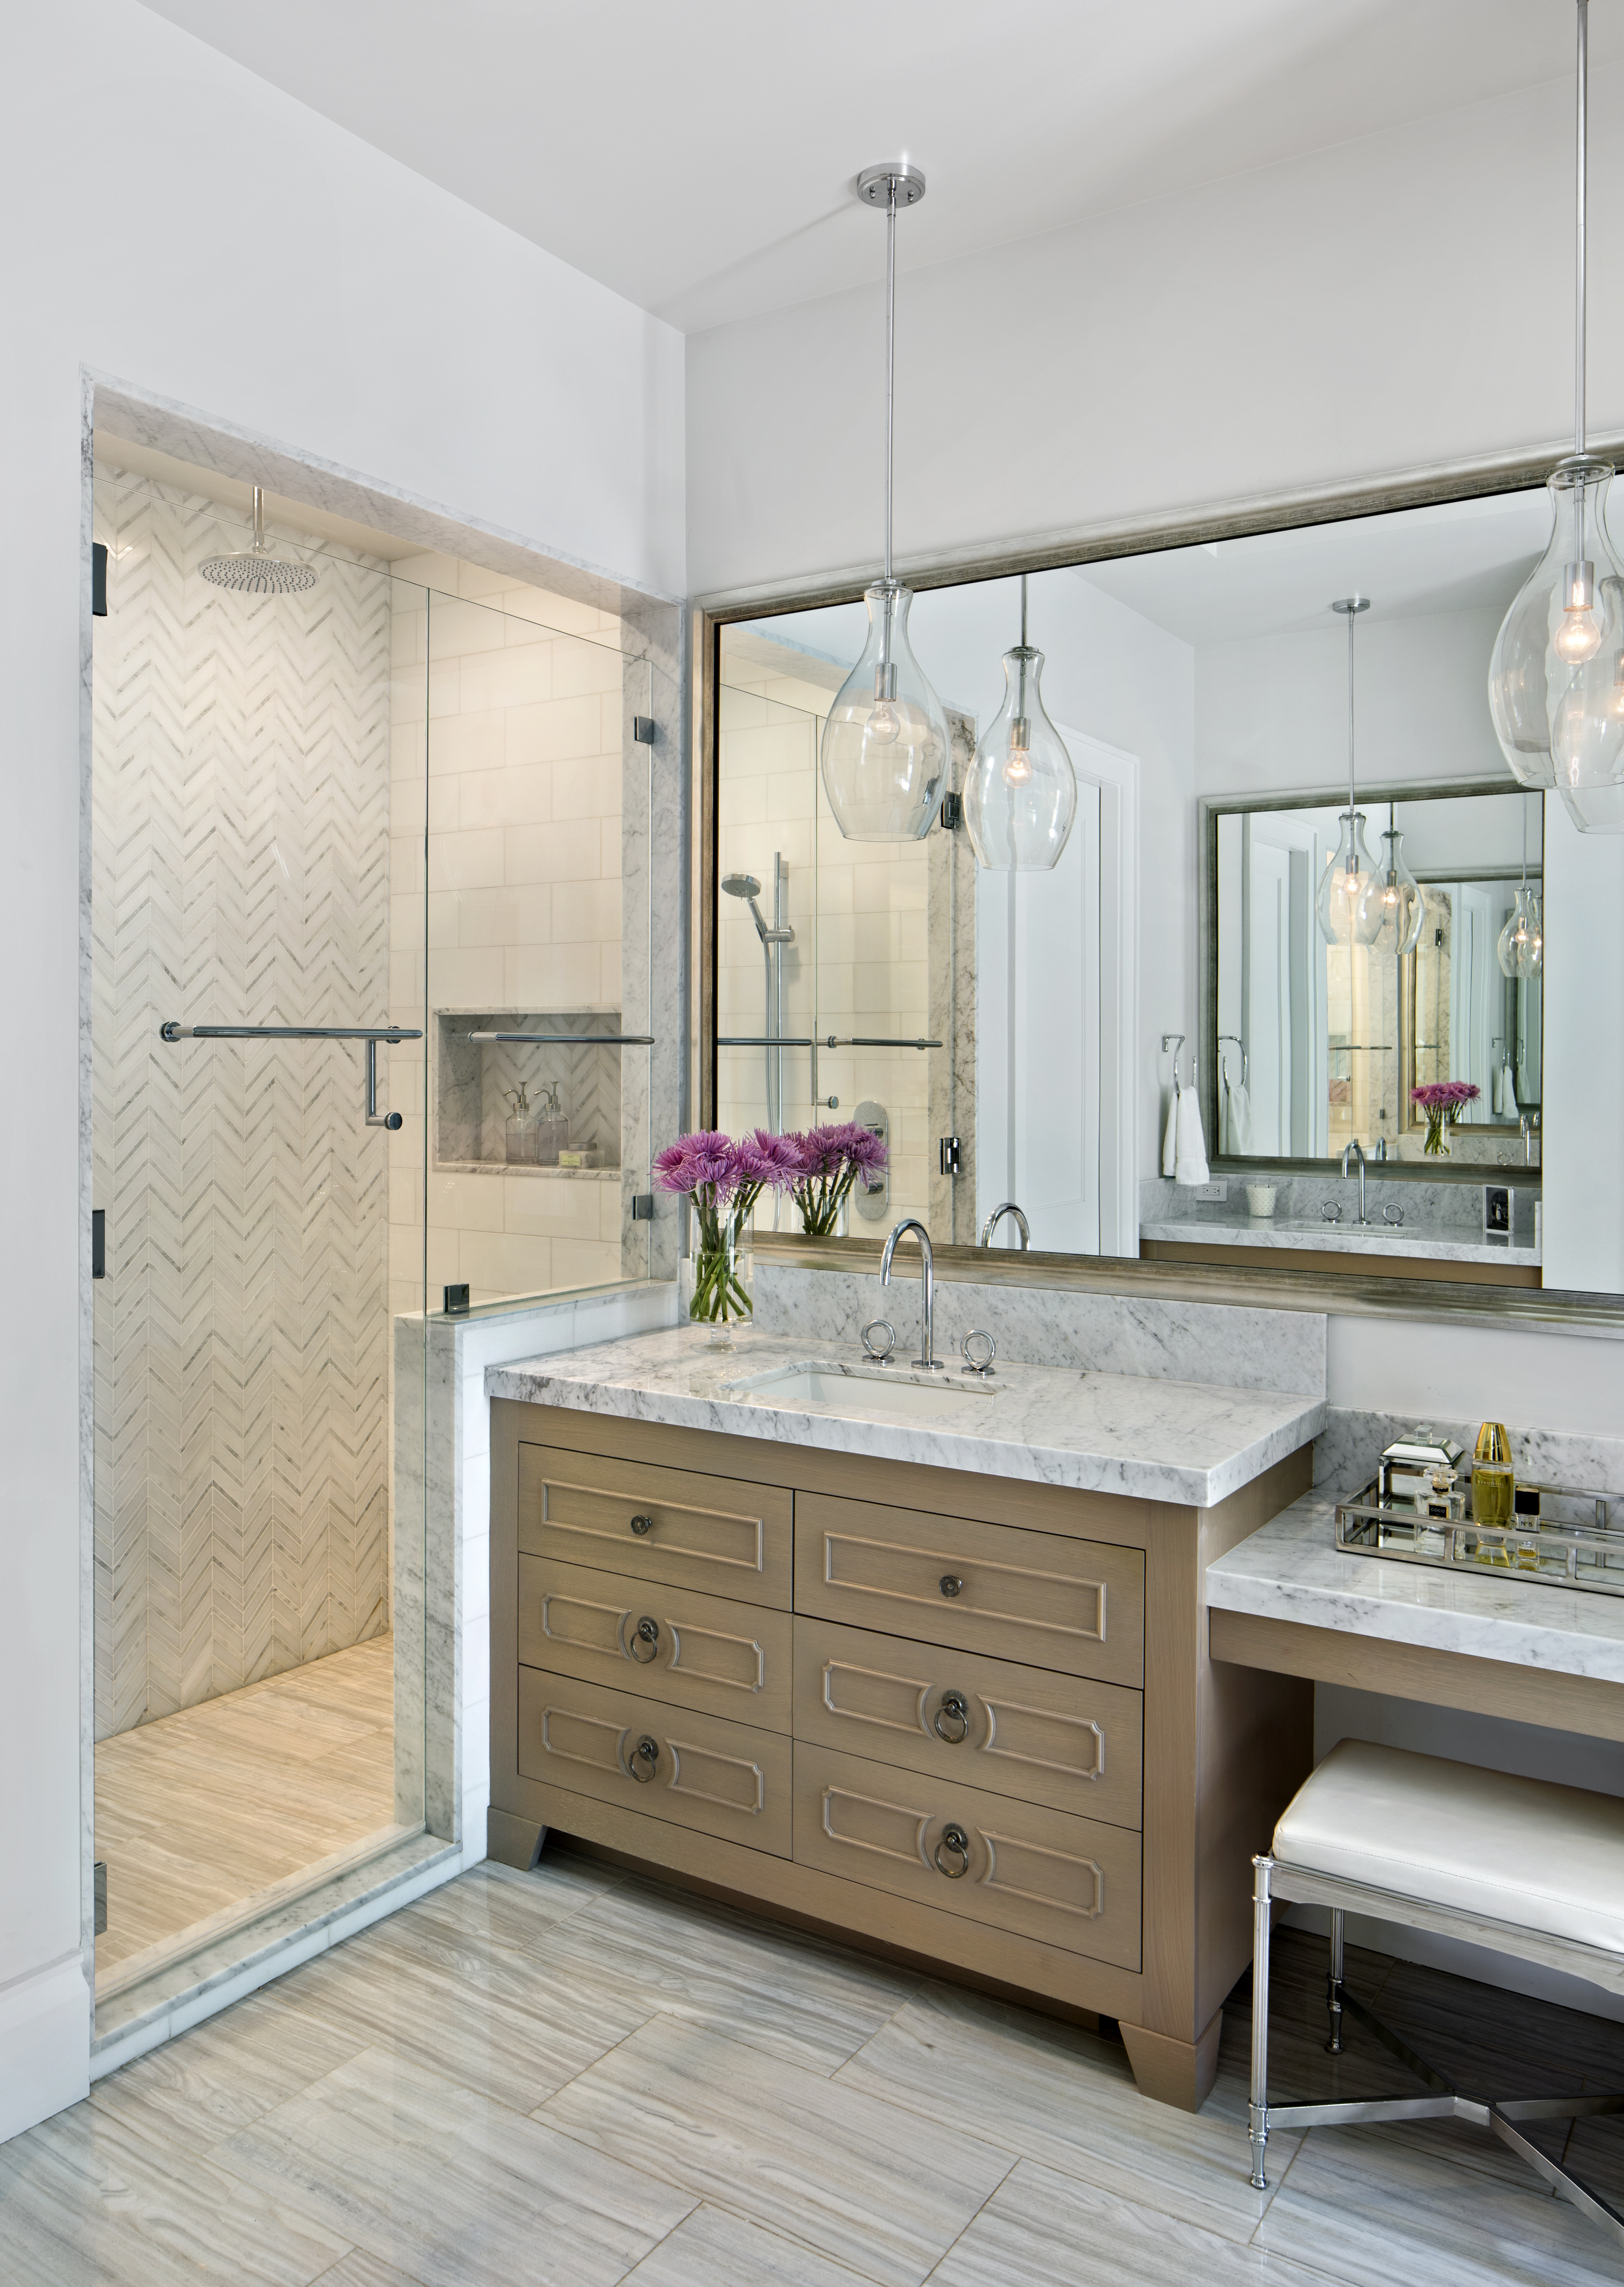 The master bath features Thassoswall tiles from New Ravenna and Siberian Sunset floor tiles from Walker Zanger. A slab of Carrara marble is used to create the modern countertops. Silver hardware, two glass pendants, and a large wall mirrorcomplete the design of the space.